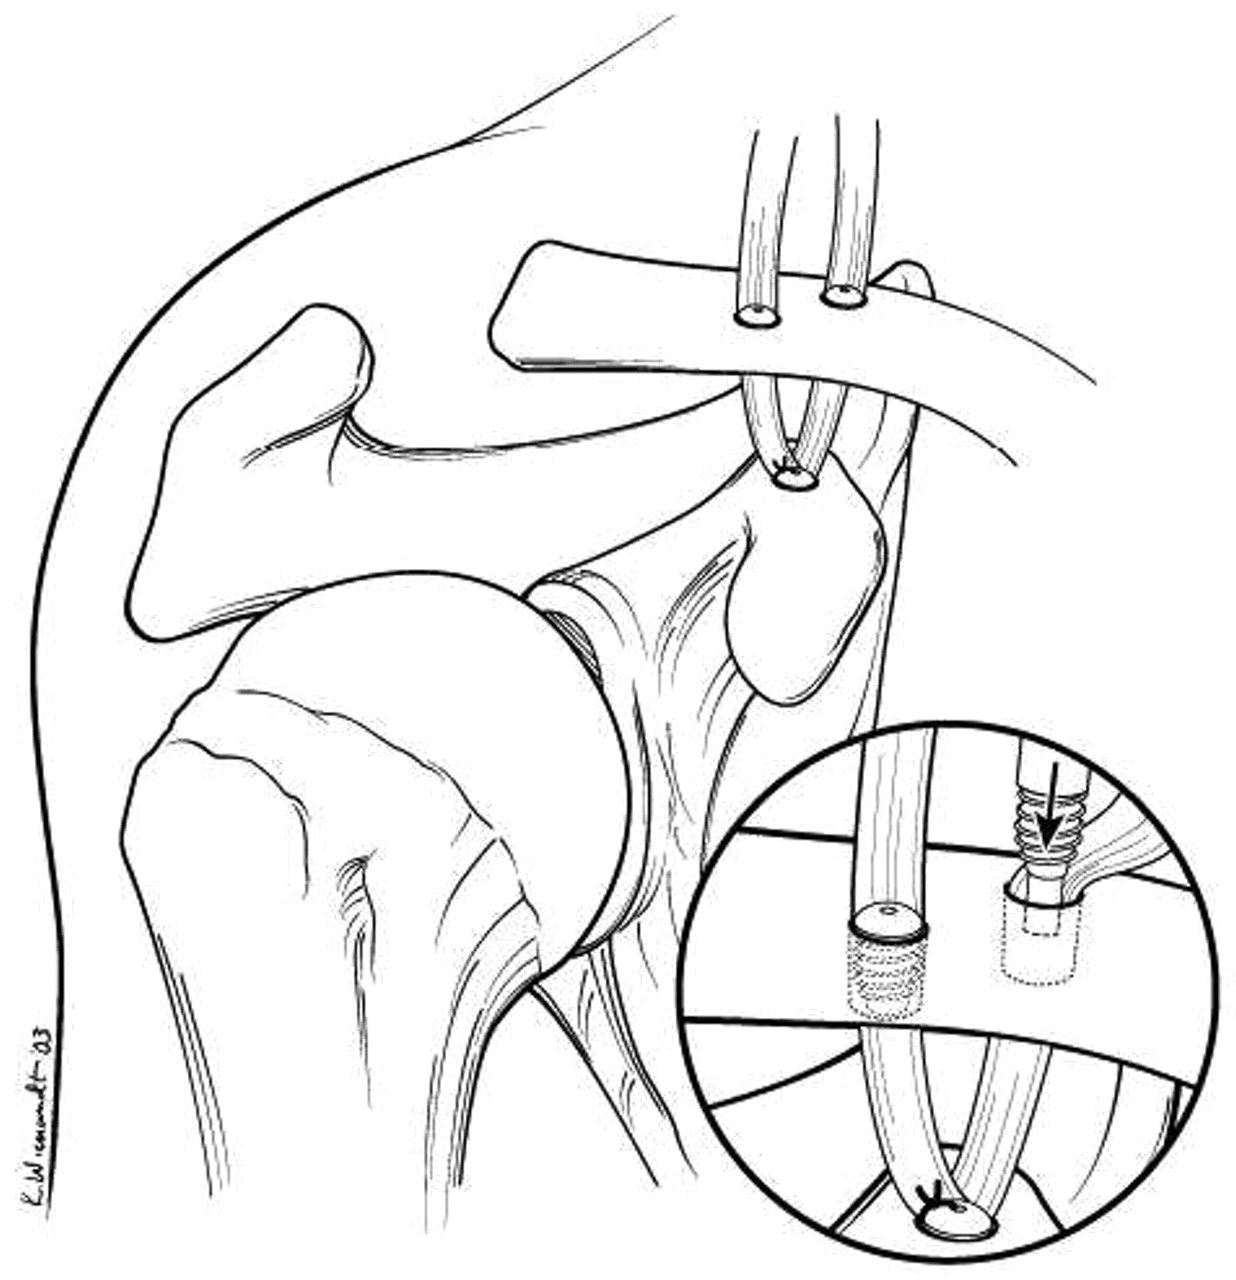 Conoid Coracoclavicular Ligament